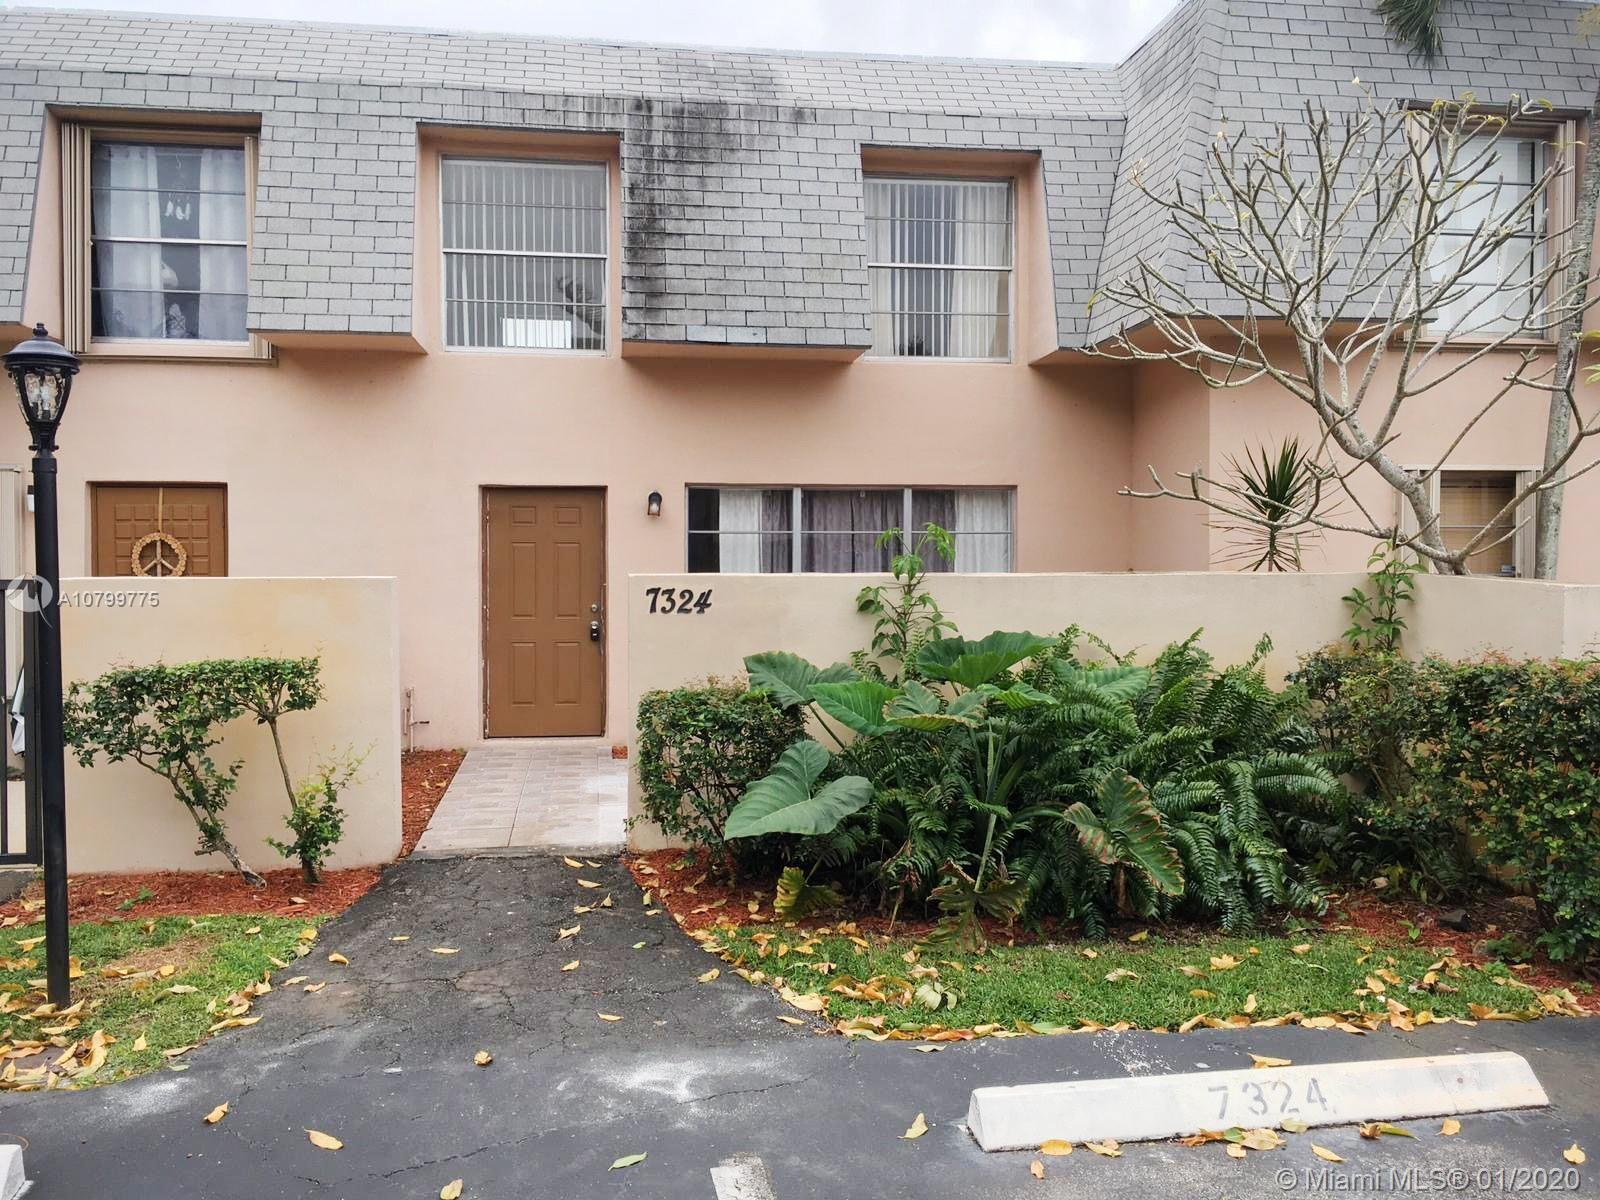 7324 SW 25th Ct #17 For Sale A10799775, FL